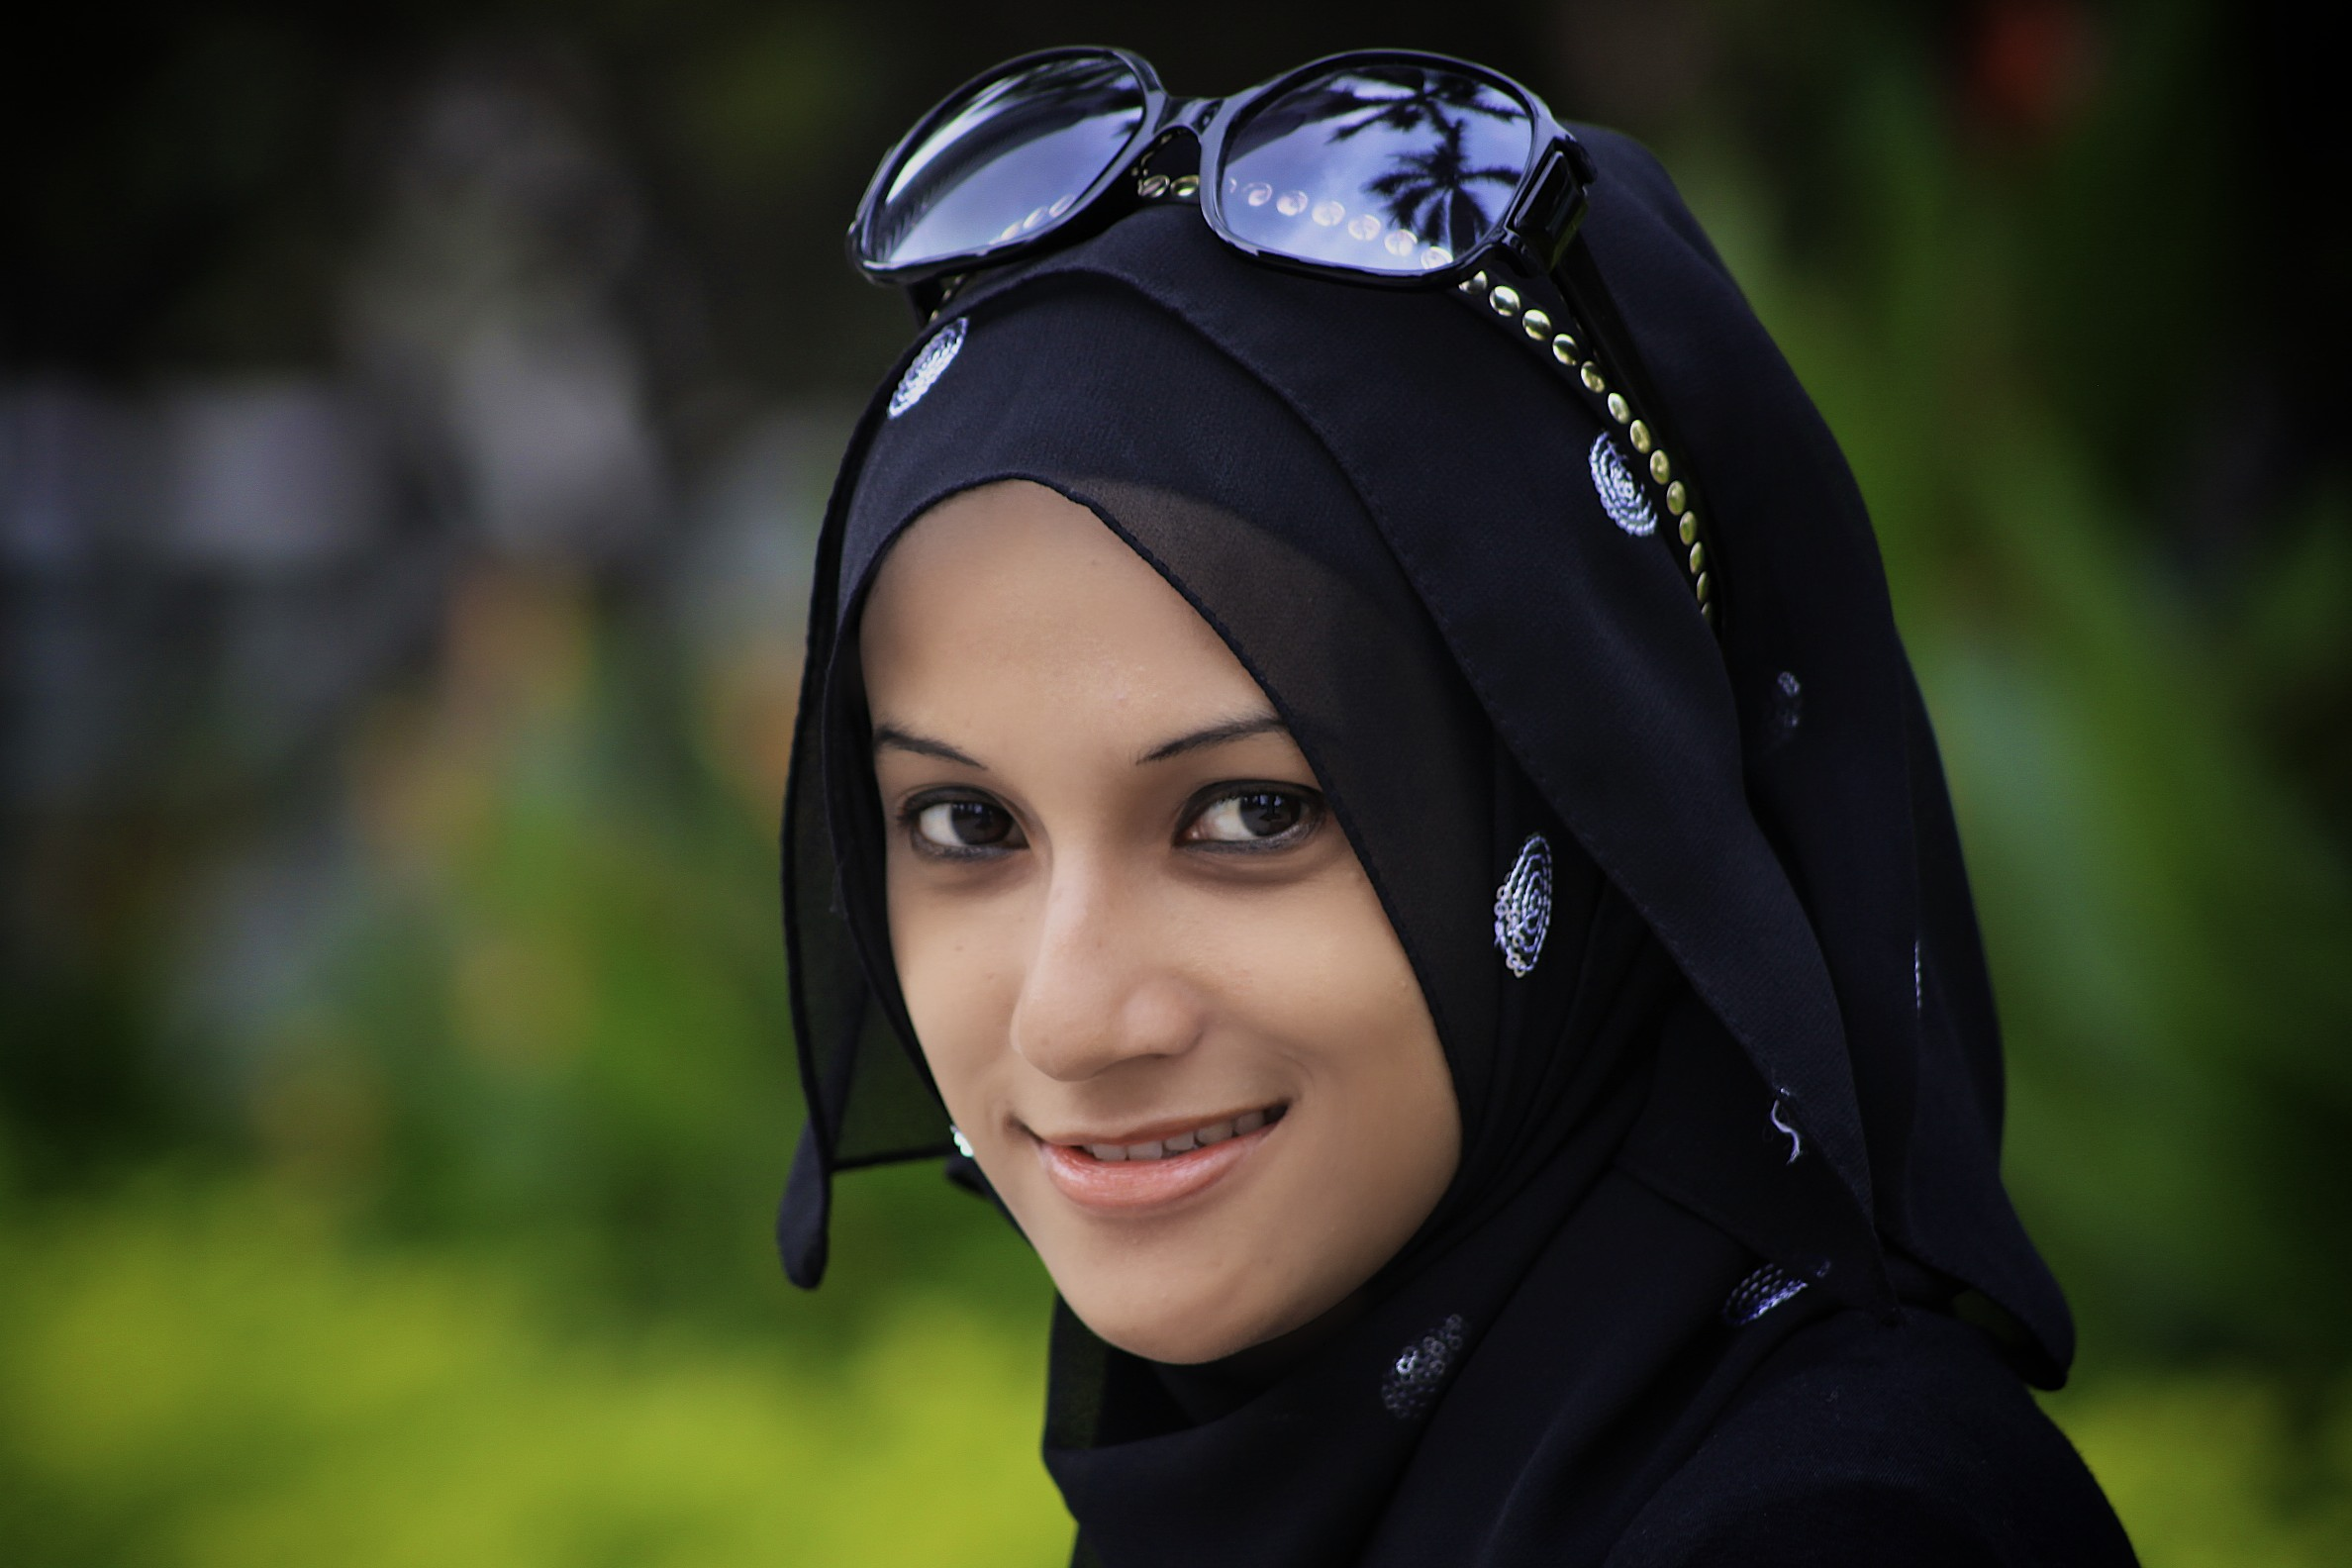 muslim single women in central square With free membership you can create your own profile, share photos and videos, contact and flirt with other muslim singles, visit our live chat rooms and interest groups, use instant messaging and much more.